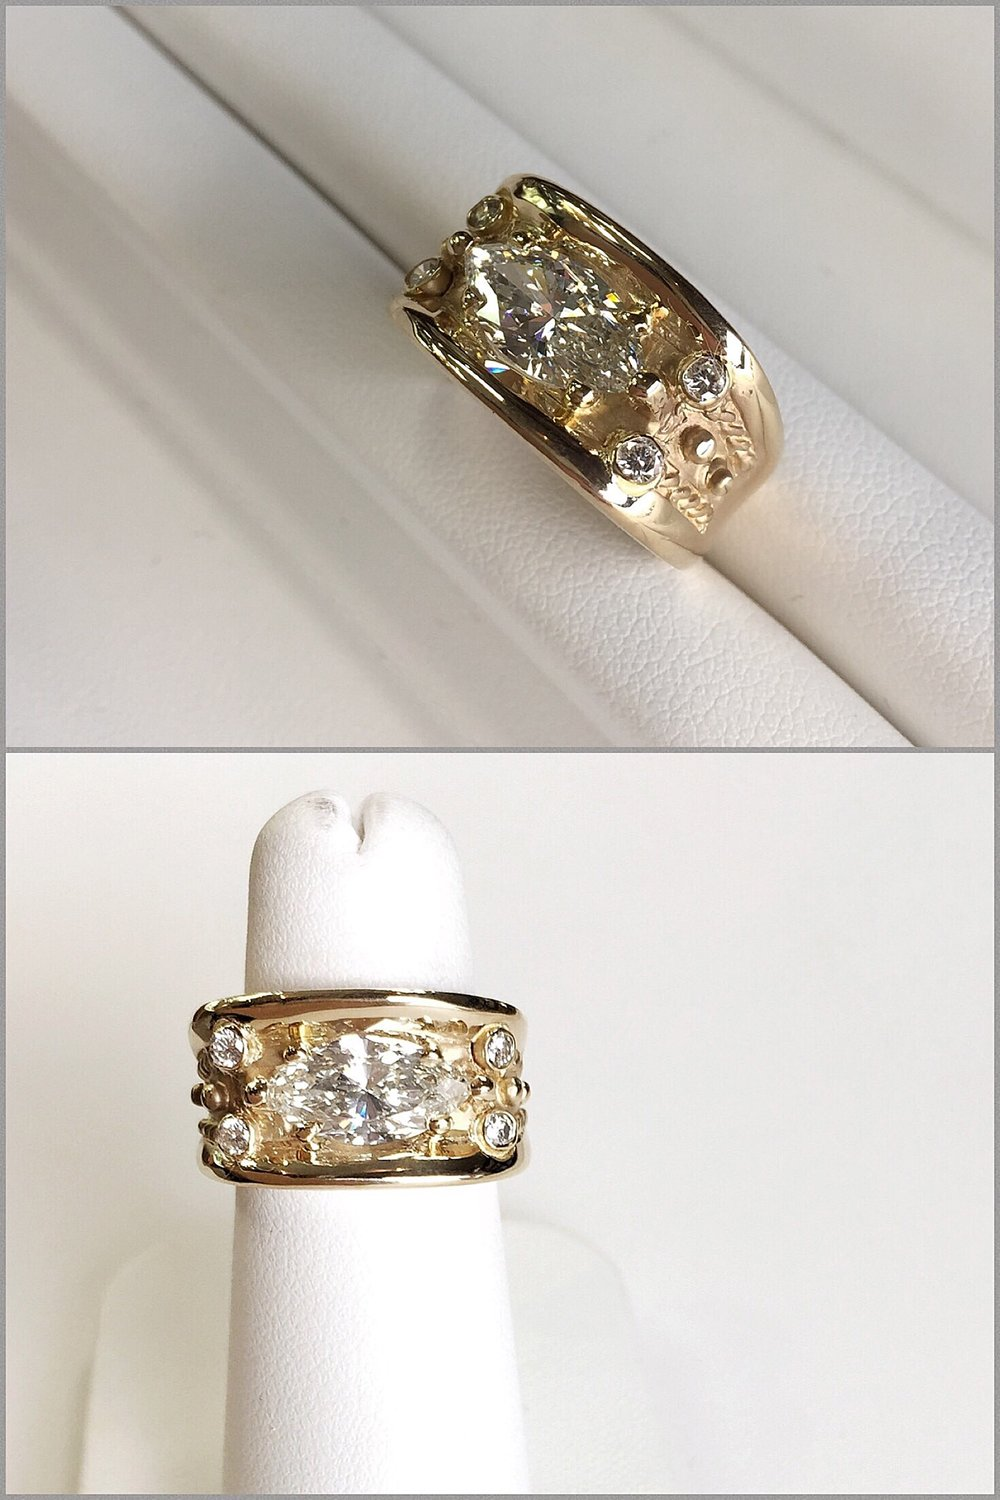 18K Yellow Gold Custom Made Ring With 2 Carat Weight Marquise in Center.